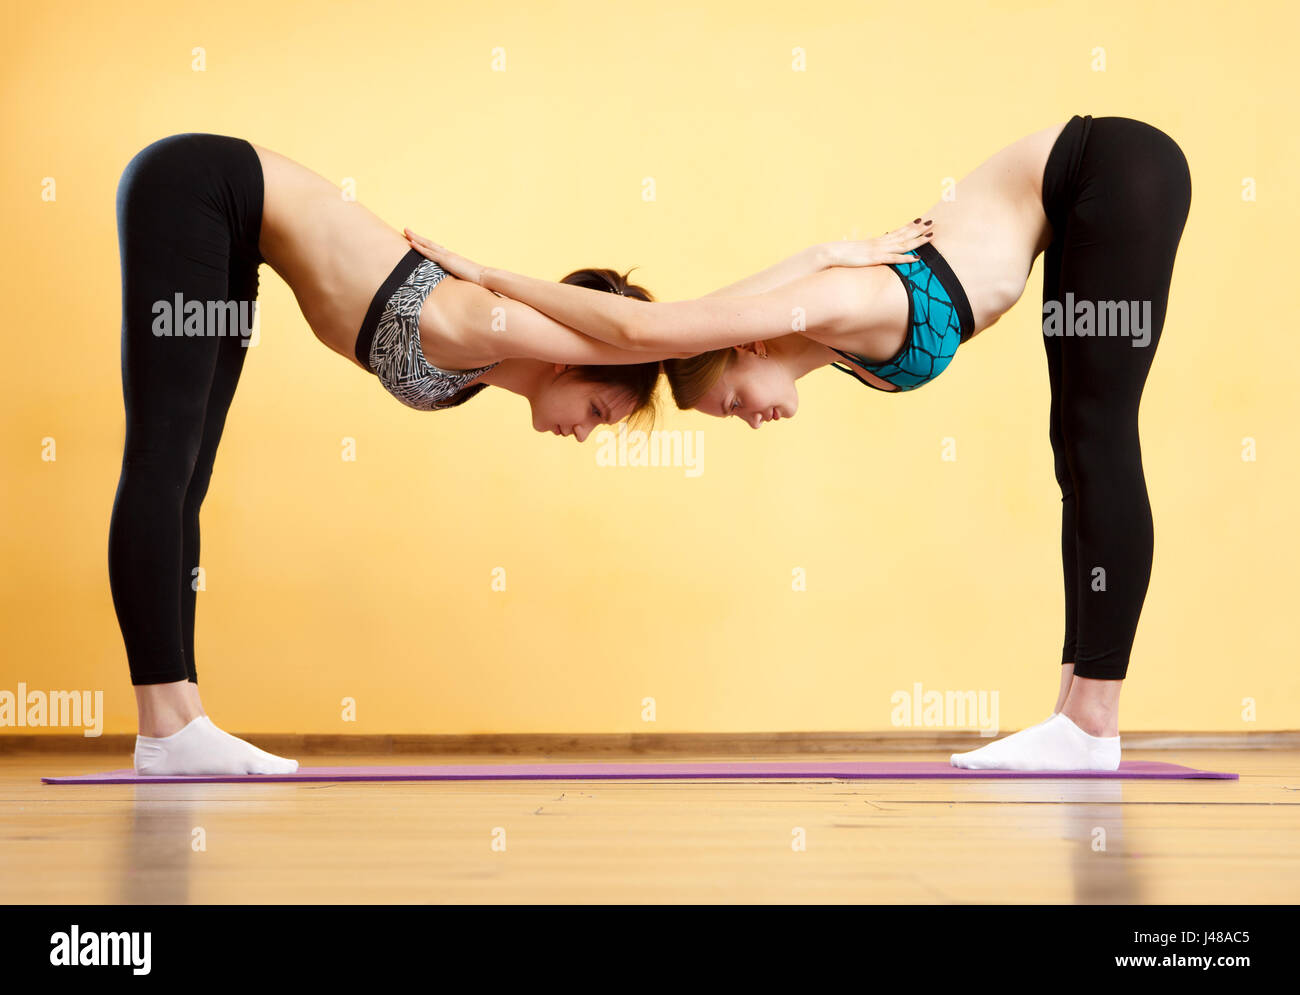 Two young women doing yoga - Stock Image